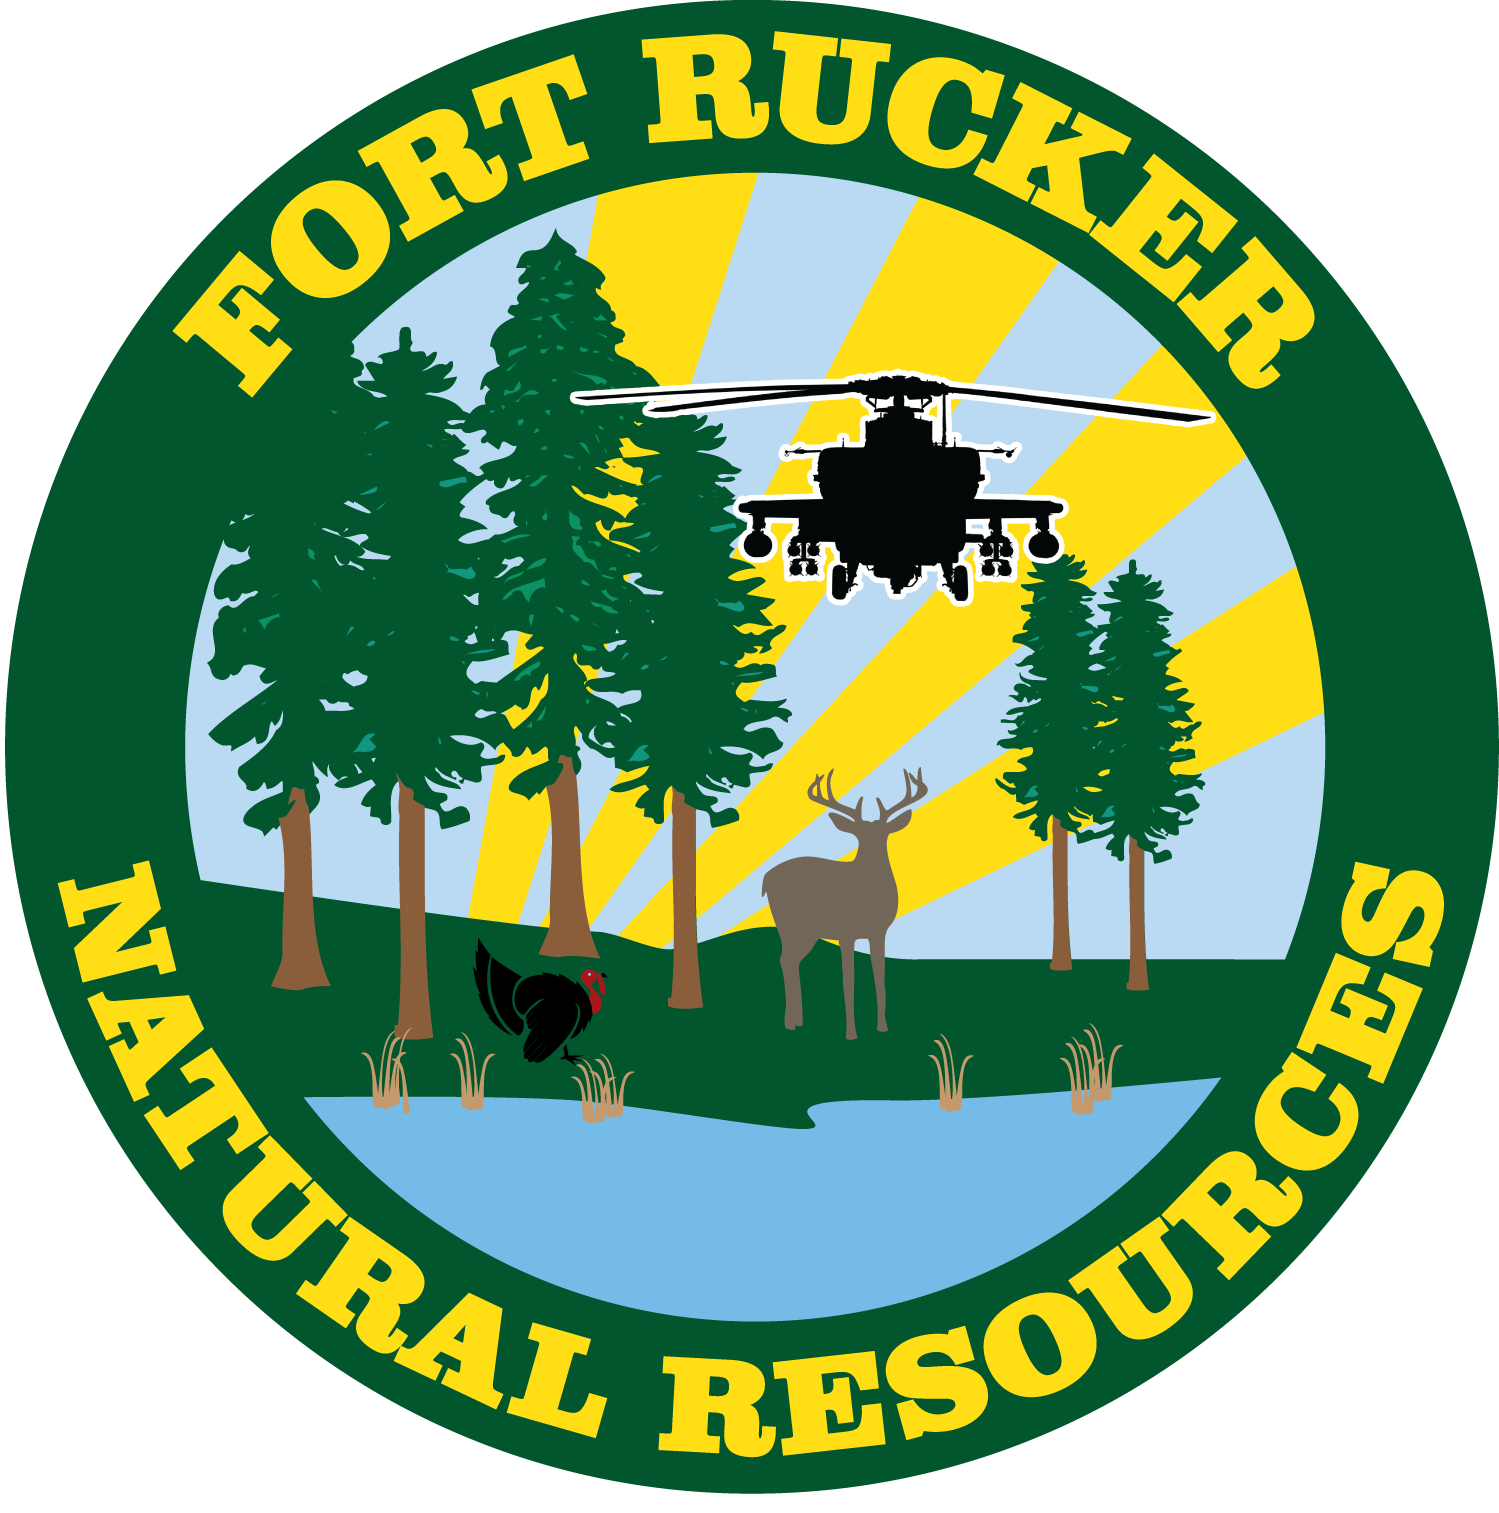 Energy clipart conservation natural resource. Sustainable fort rucker at